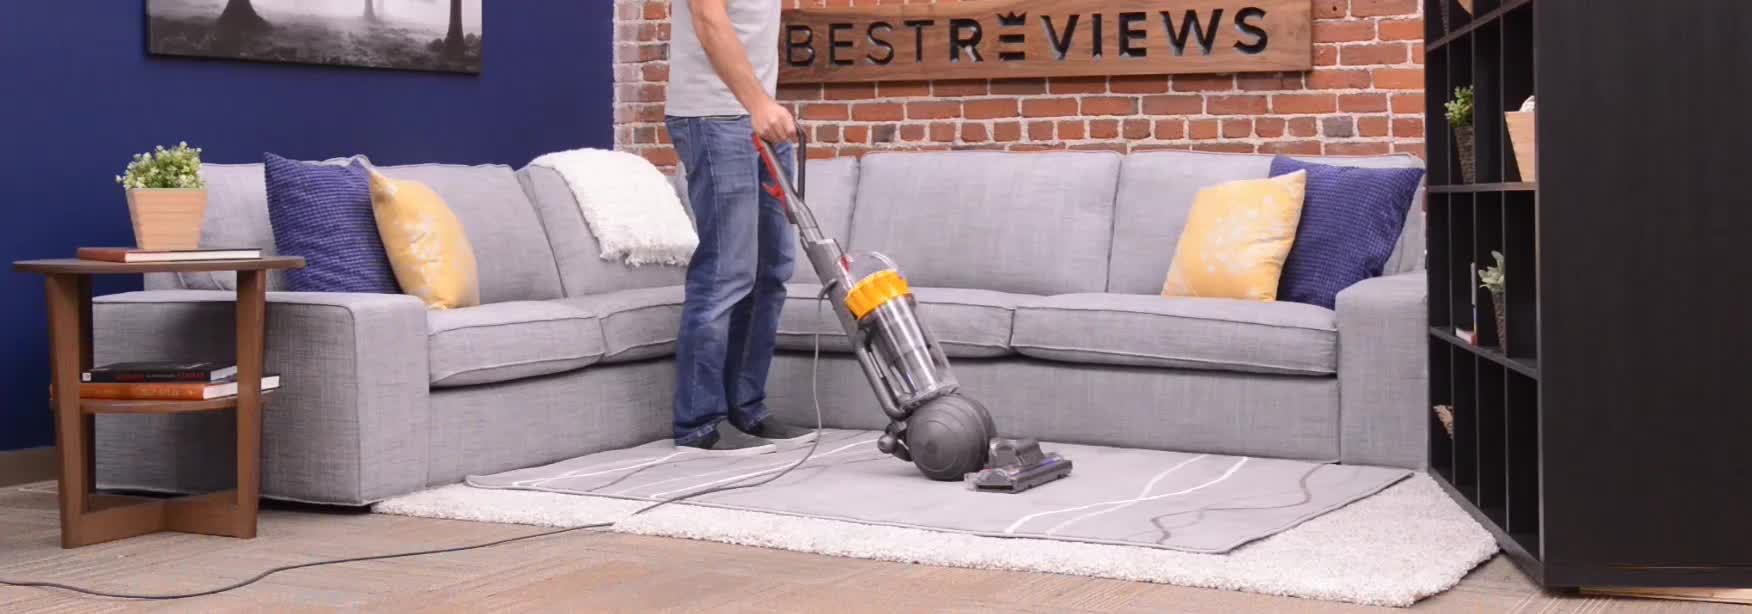 2020 Best Vacuums Best Vacuum Cleaners 2019/2020/2021